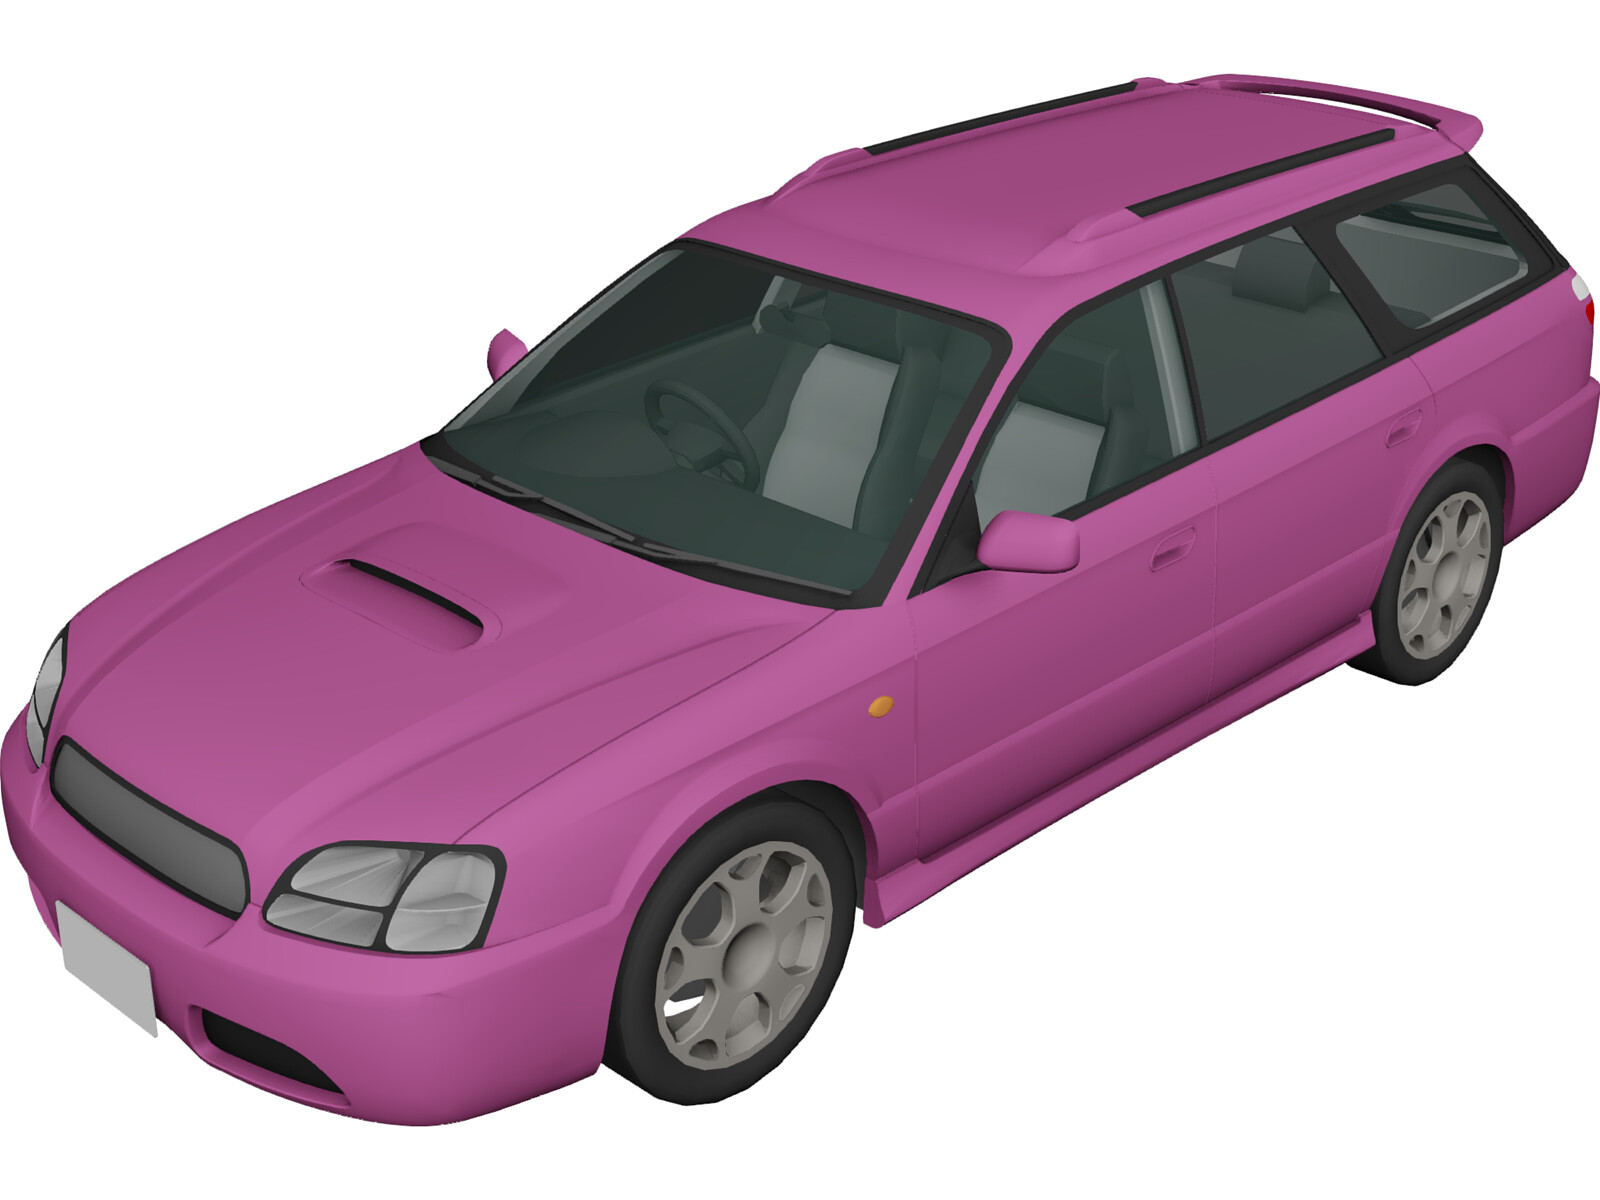 Subaru Legacy Station Wagon (1998) 3D Model